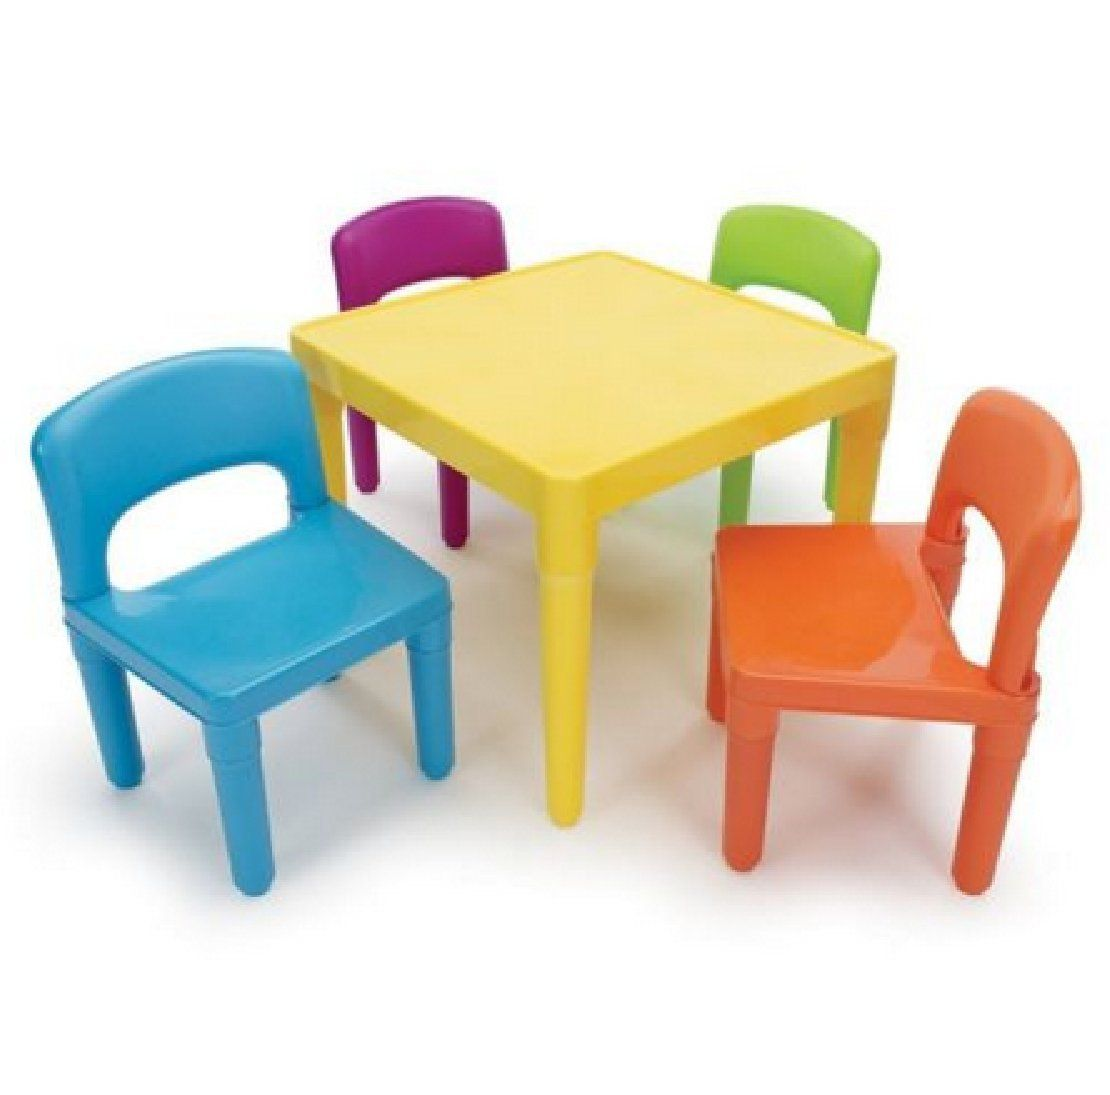 Tremendous Kid Chairs Chairs Kids Table Chair Set Kids Plastic Gmtry Best Dining Table And Chair Ideas Images Gmtryco